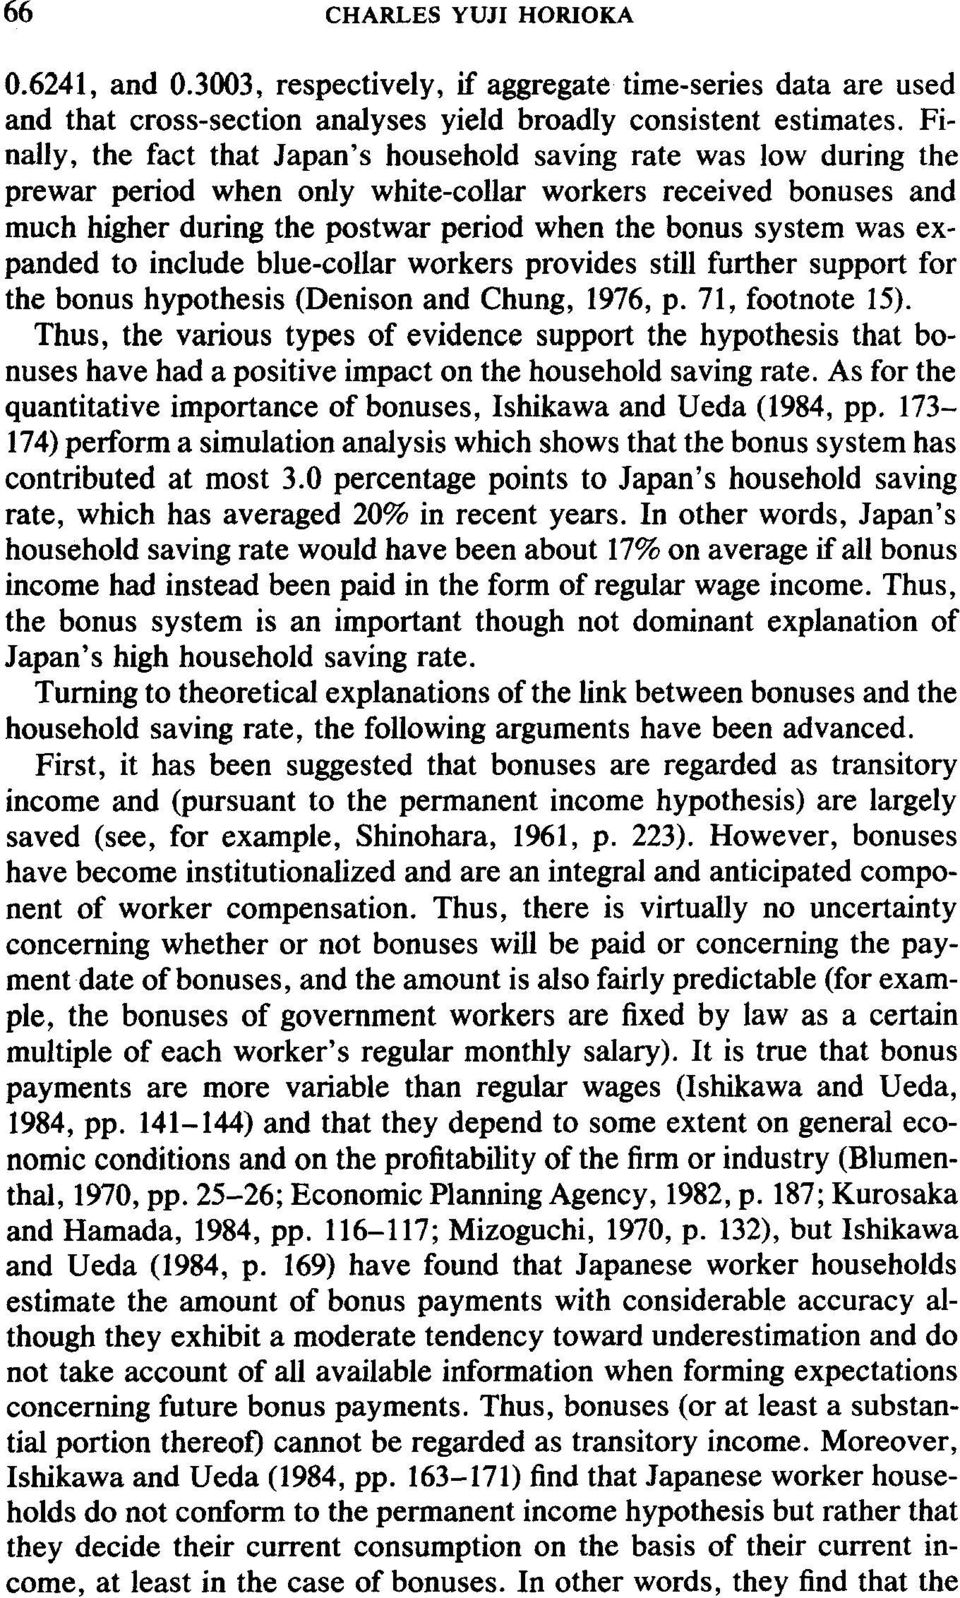 was expanded to include blue-collar workers provides still further support for the bonus hypothesis (Denison and Chung, 1976, p. 71, footnote 15).